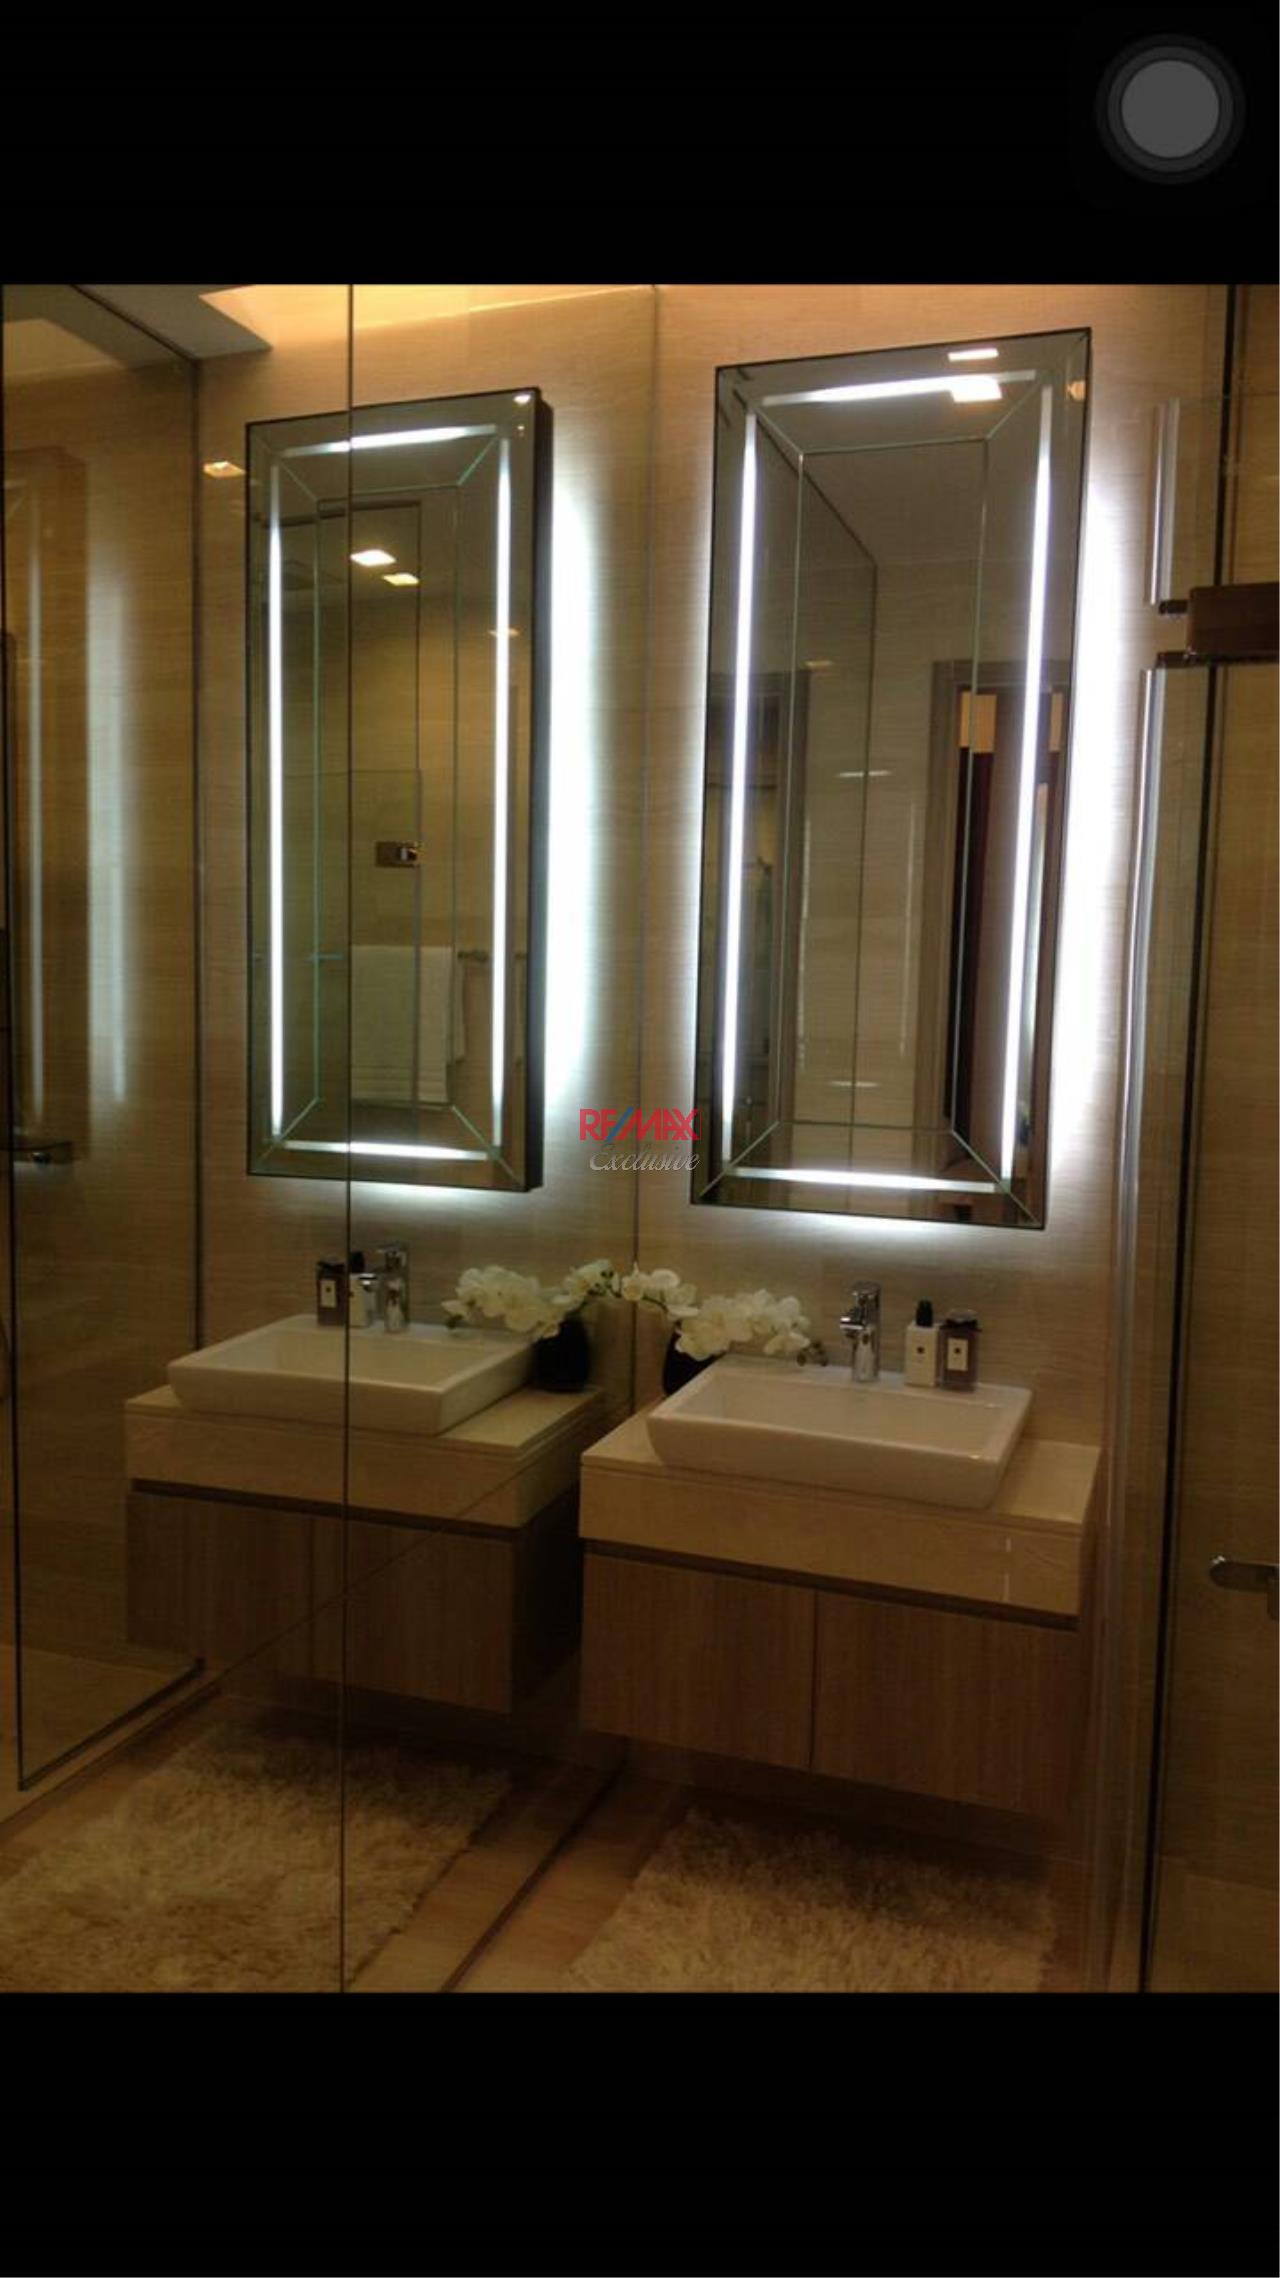 RE/MAX Exclusive Agency's The XXXIX By Sansiri 1 Bedroom For Sale with Tenant 15,200,000 THB!! 9